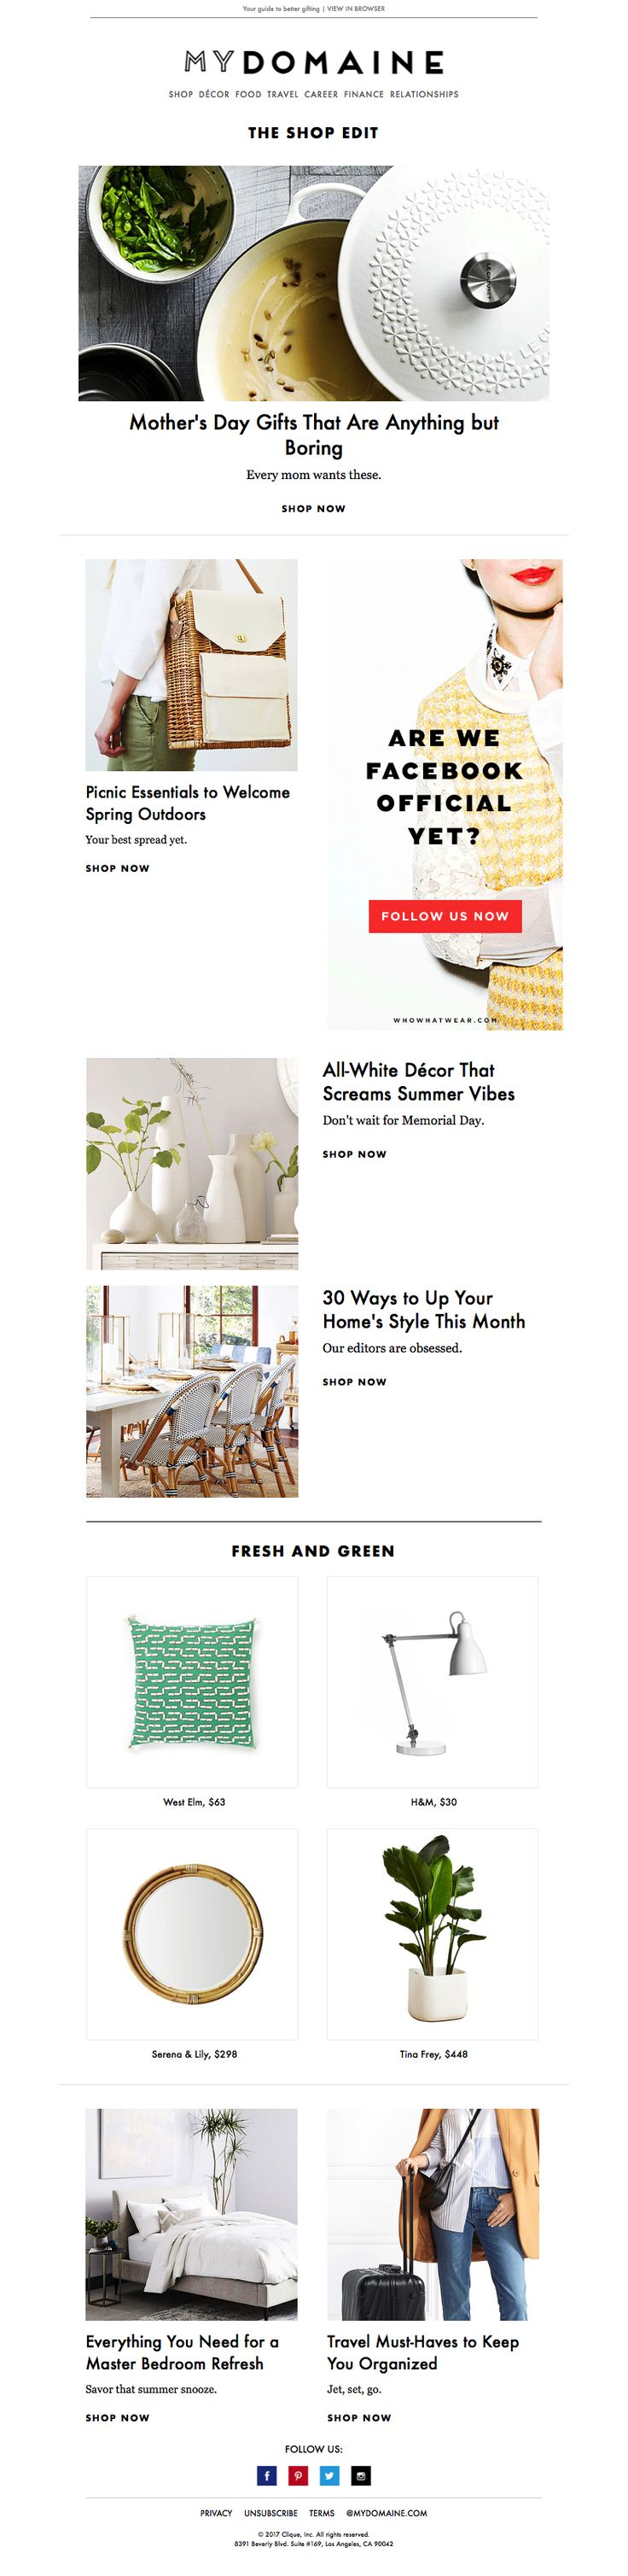 Style at home e-newsletters